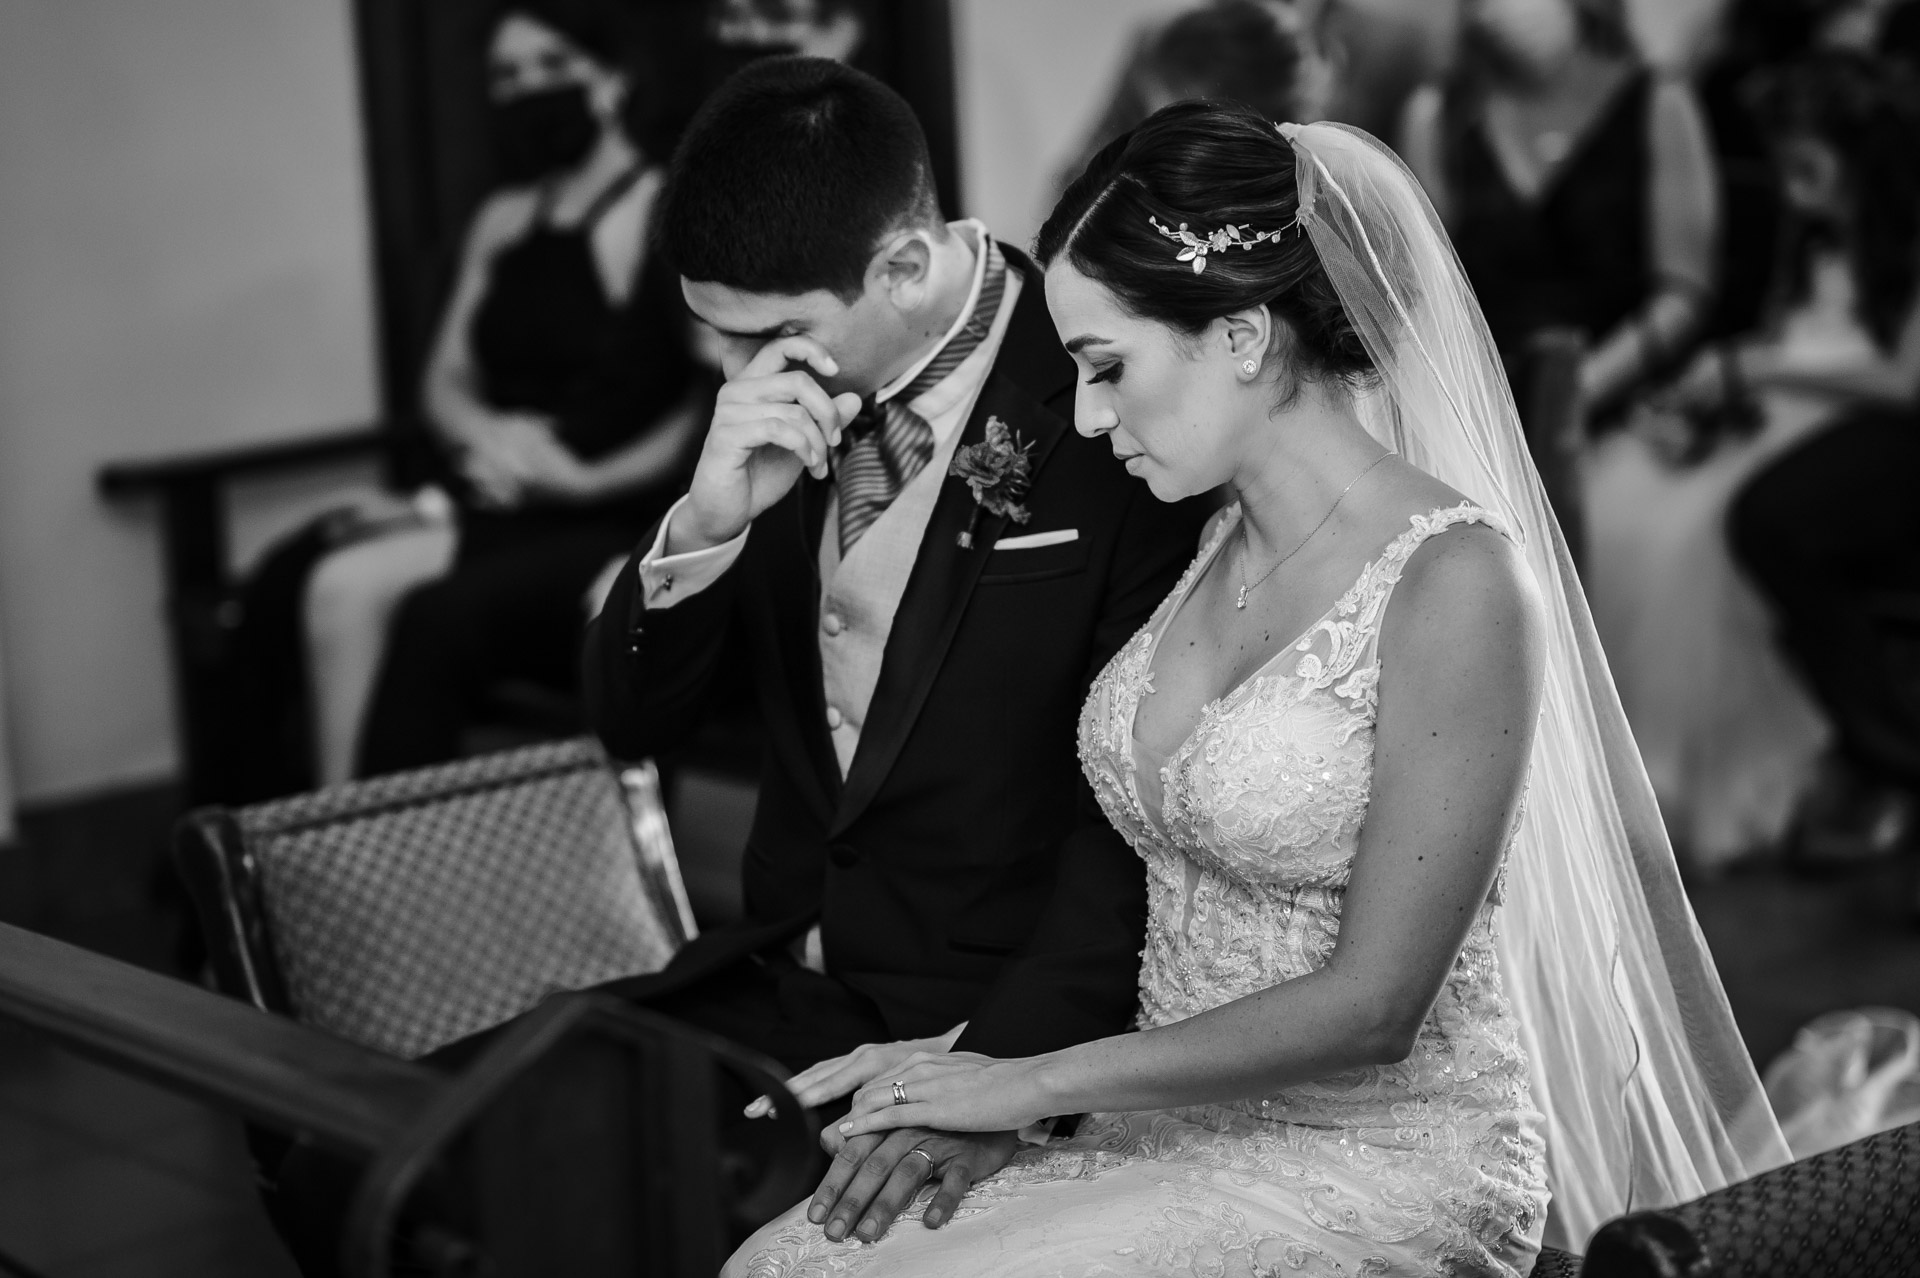 Destination Wedding Photographer Based in Costa Rica | The groom went in tears while hearing the artist playing